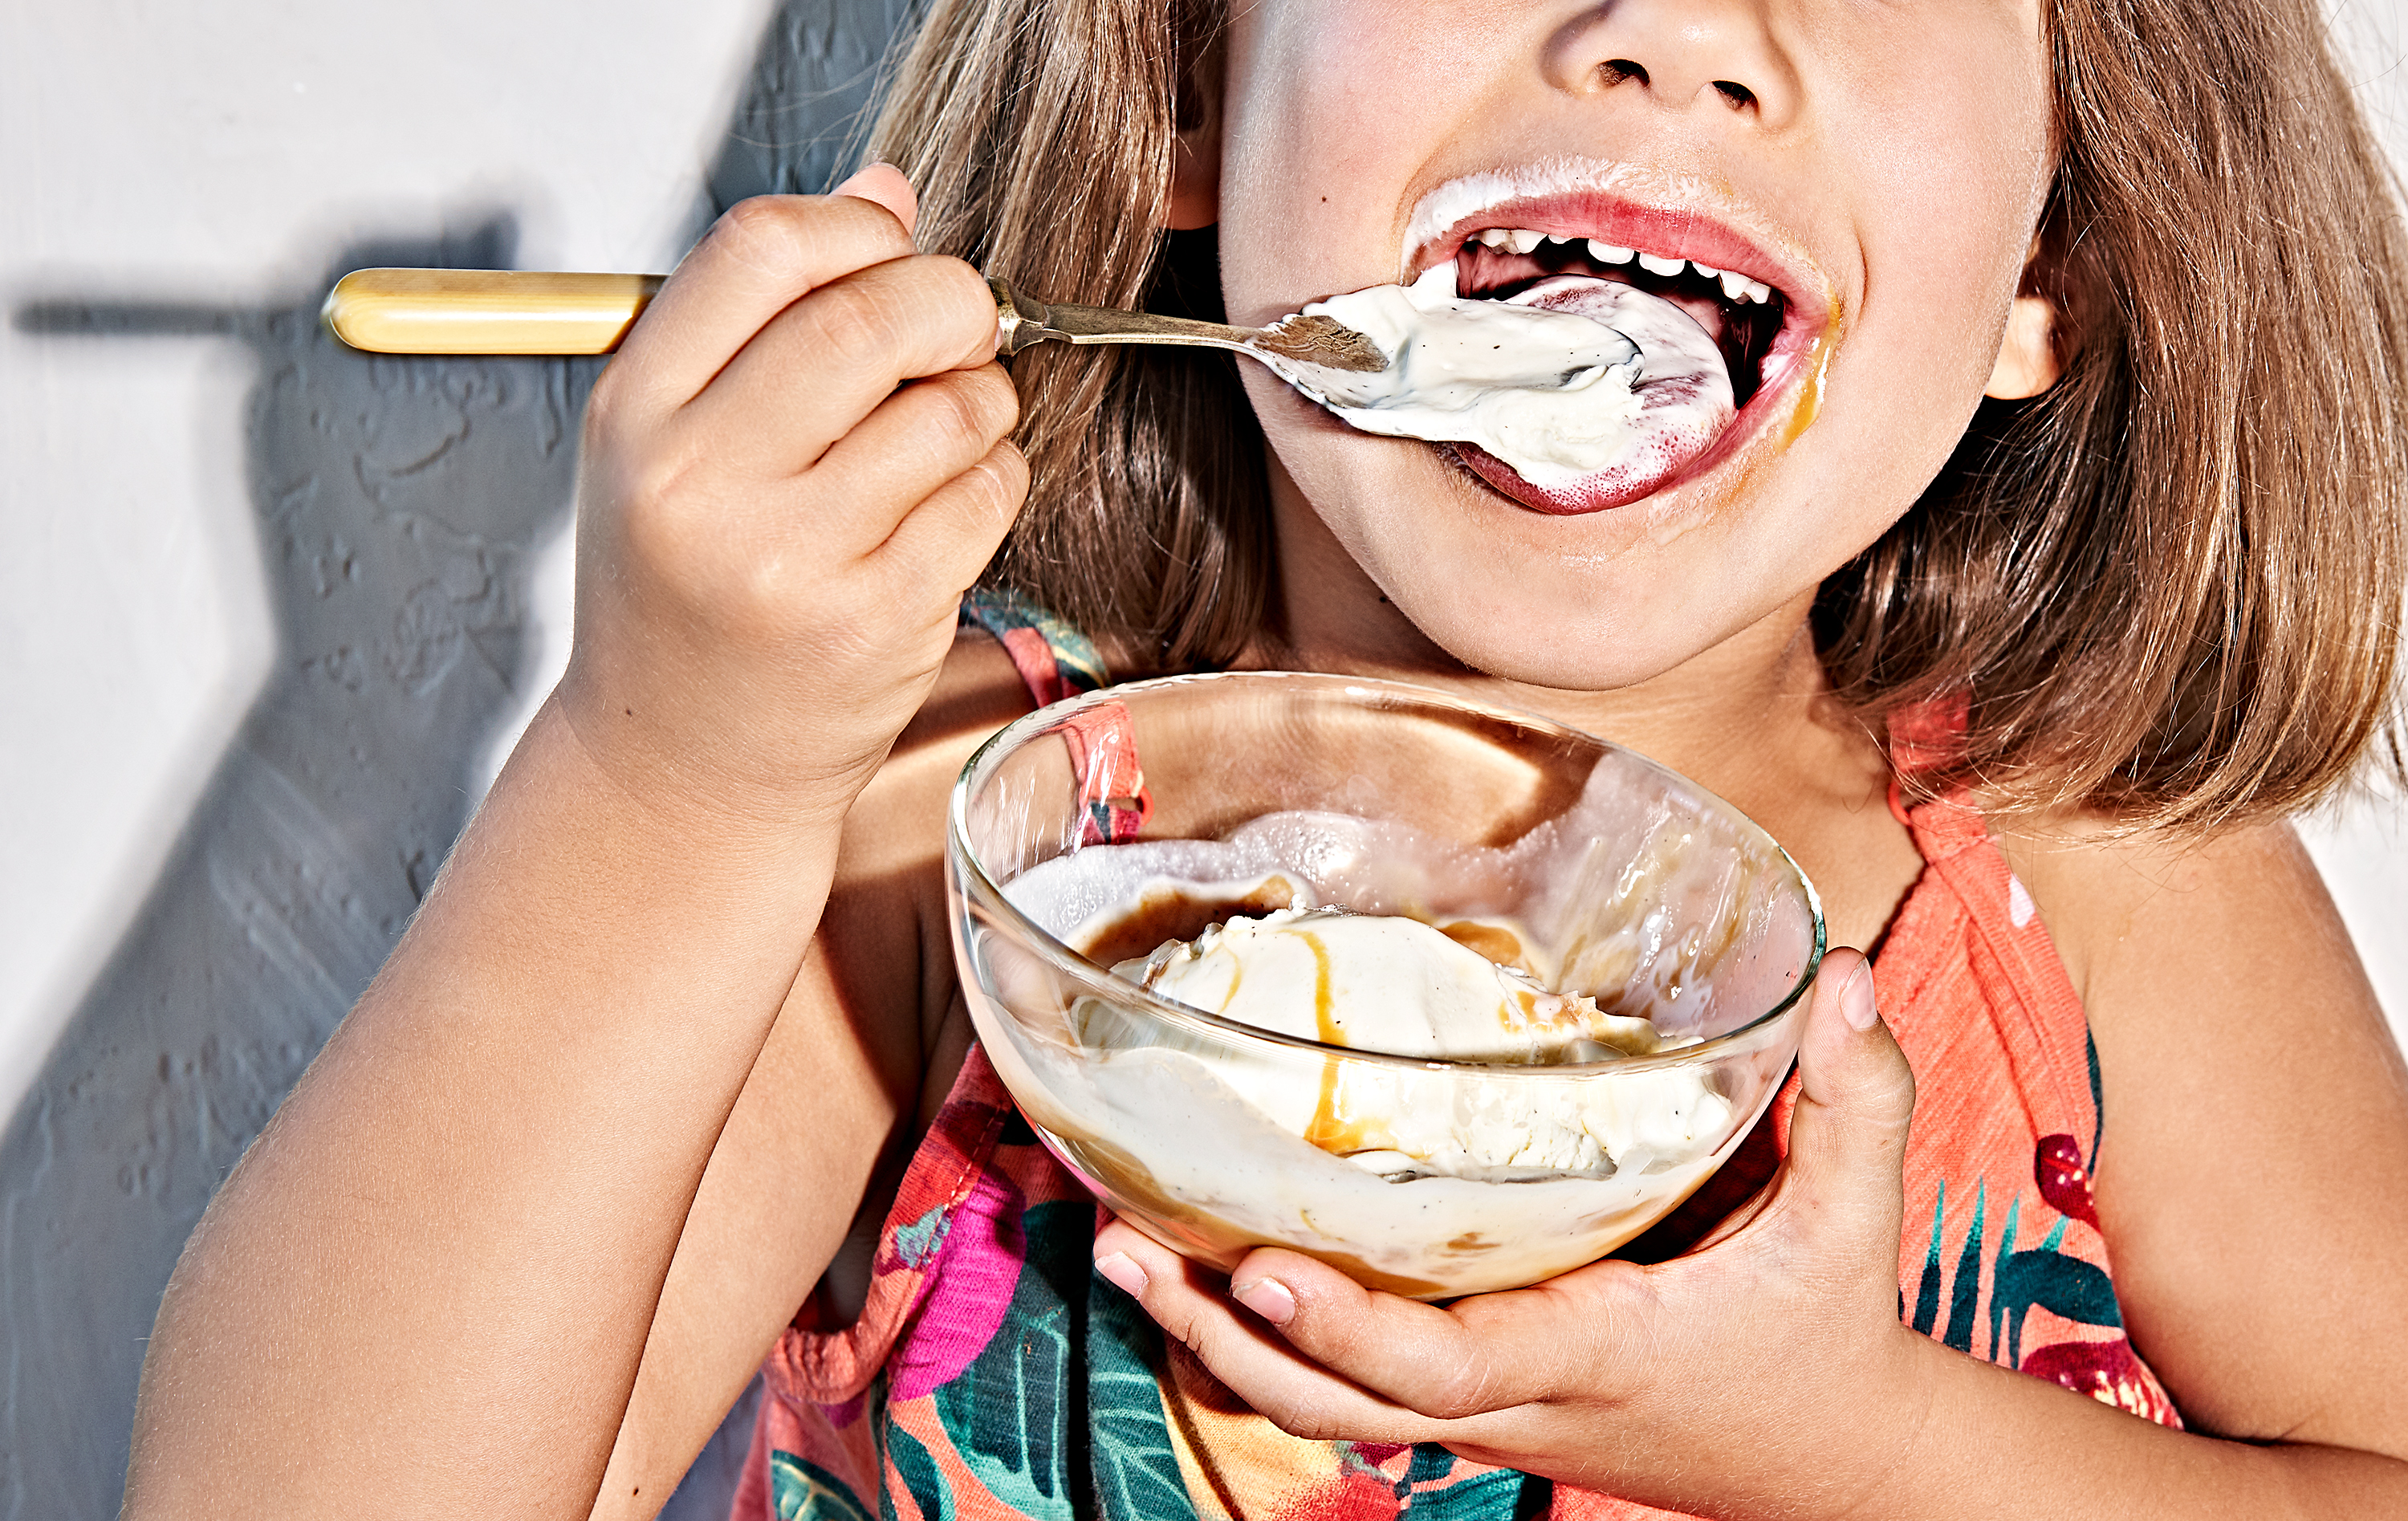 Young girl eating ice cream with dulce de leche caramel.